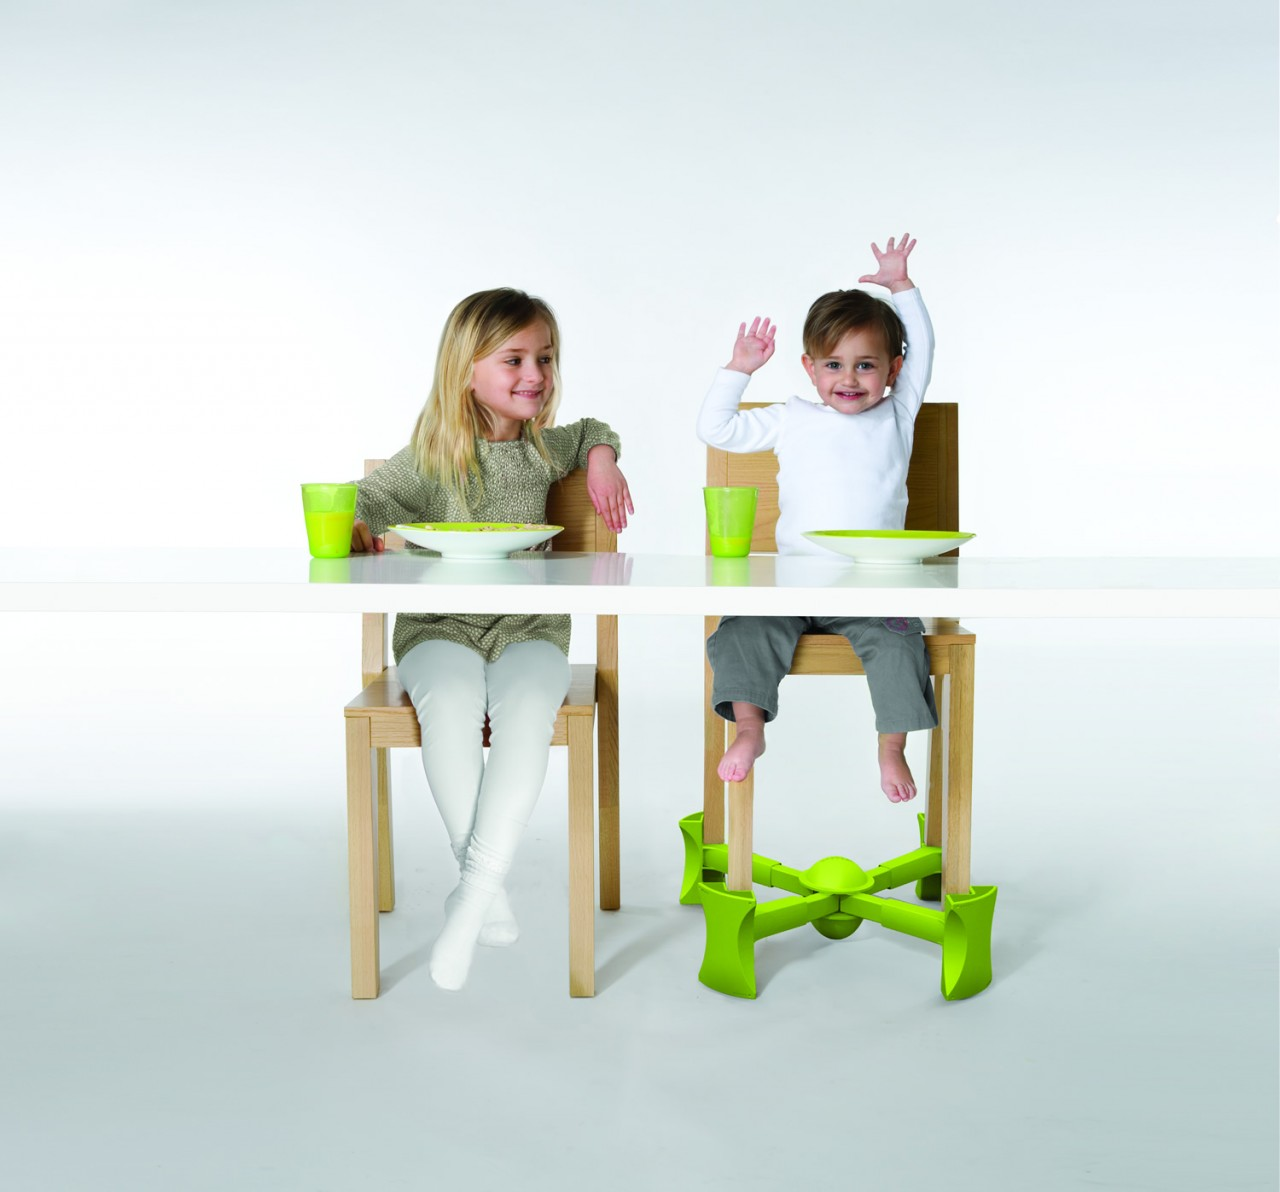 kaboost portable chair booster covers and table cloths how to be the best nanny